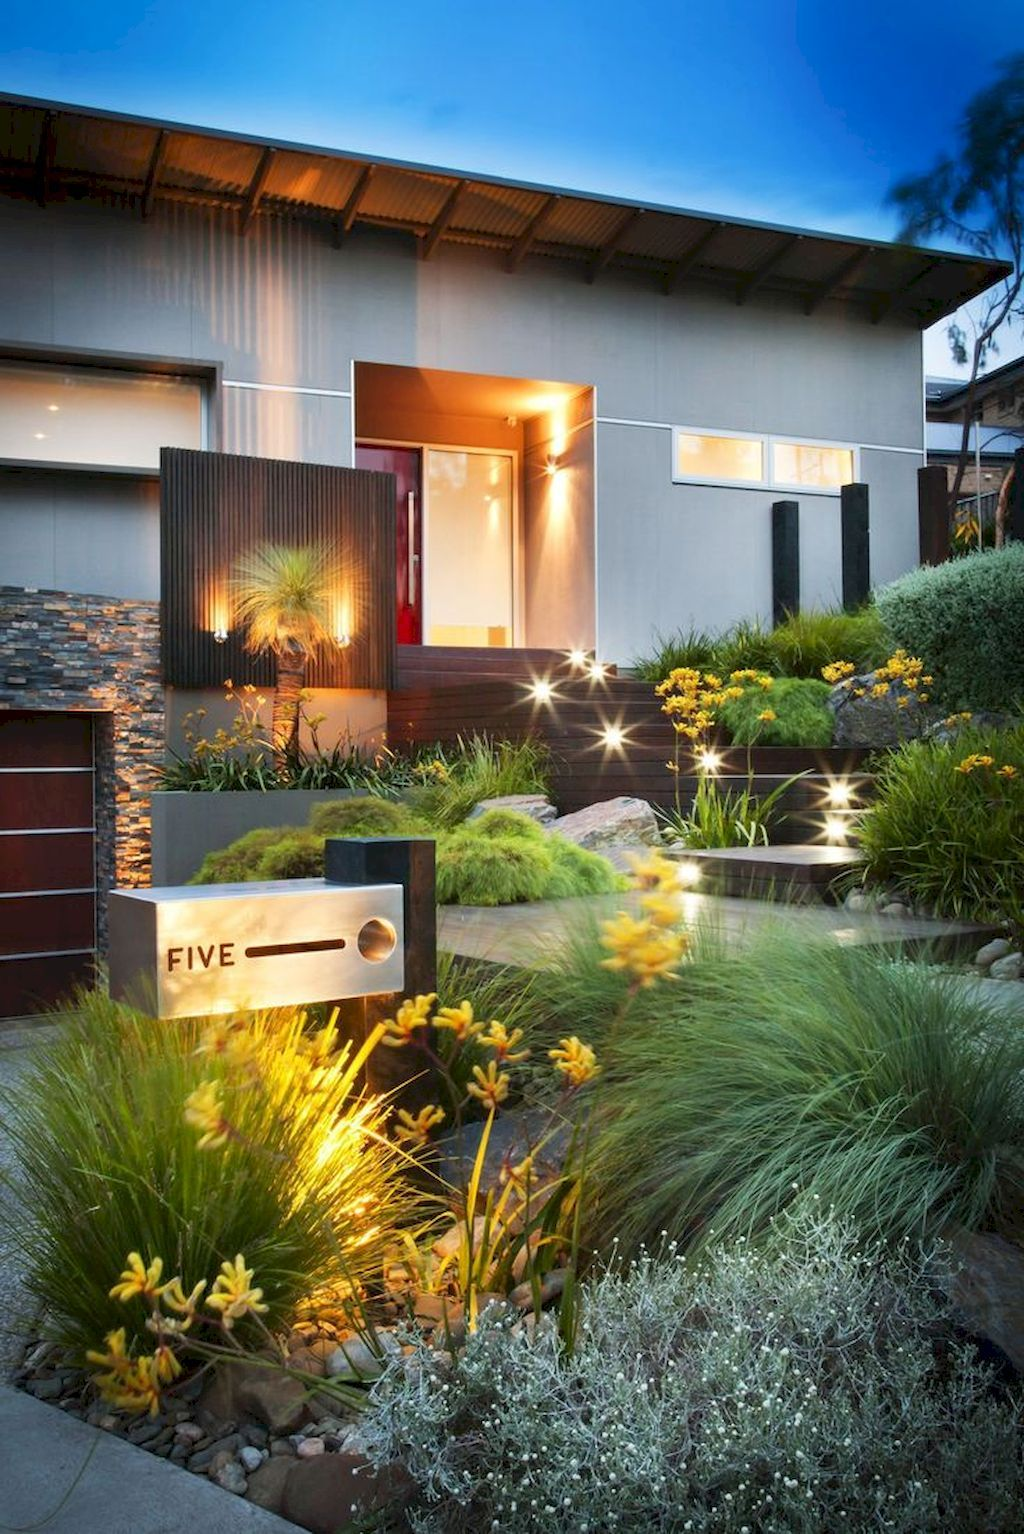 50 Simple Modern Front Yard Landscaping Ideas - HomeIdeas.co #modernlandscapedesign